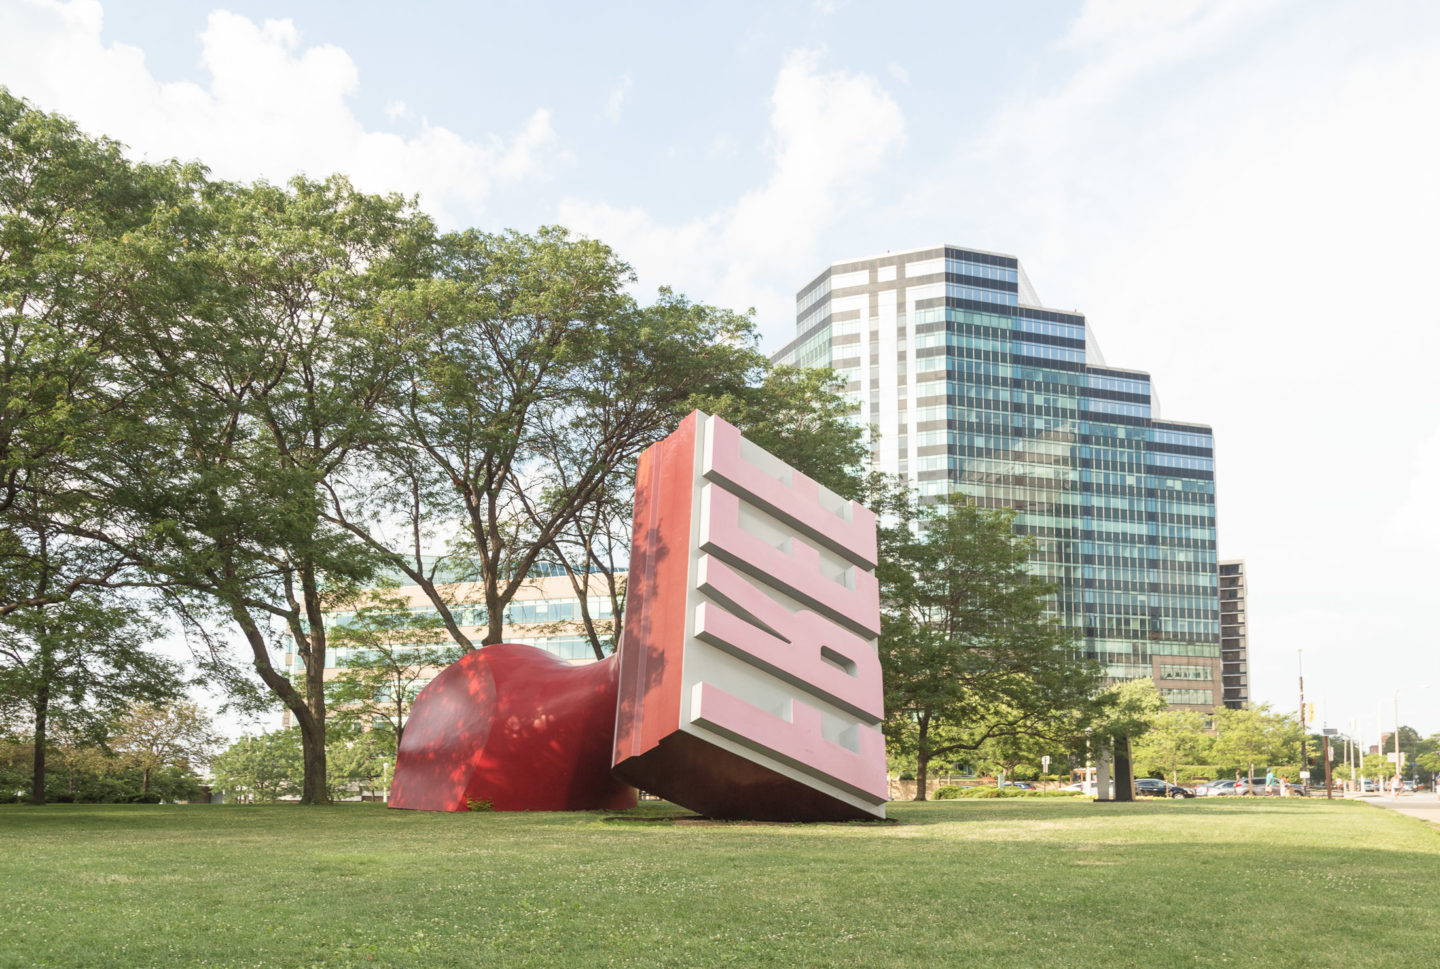 Largest Rubber Stamp | Unique things to do in Cleveland, Ohio